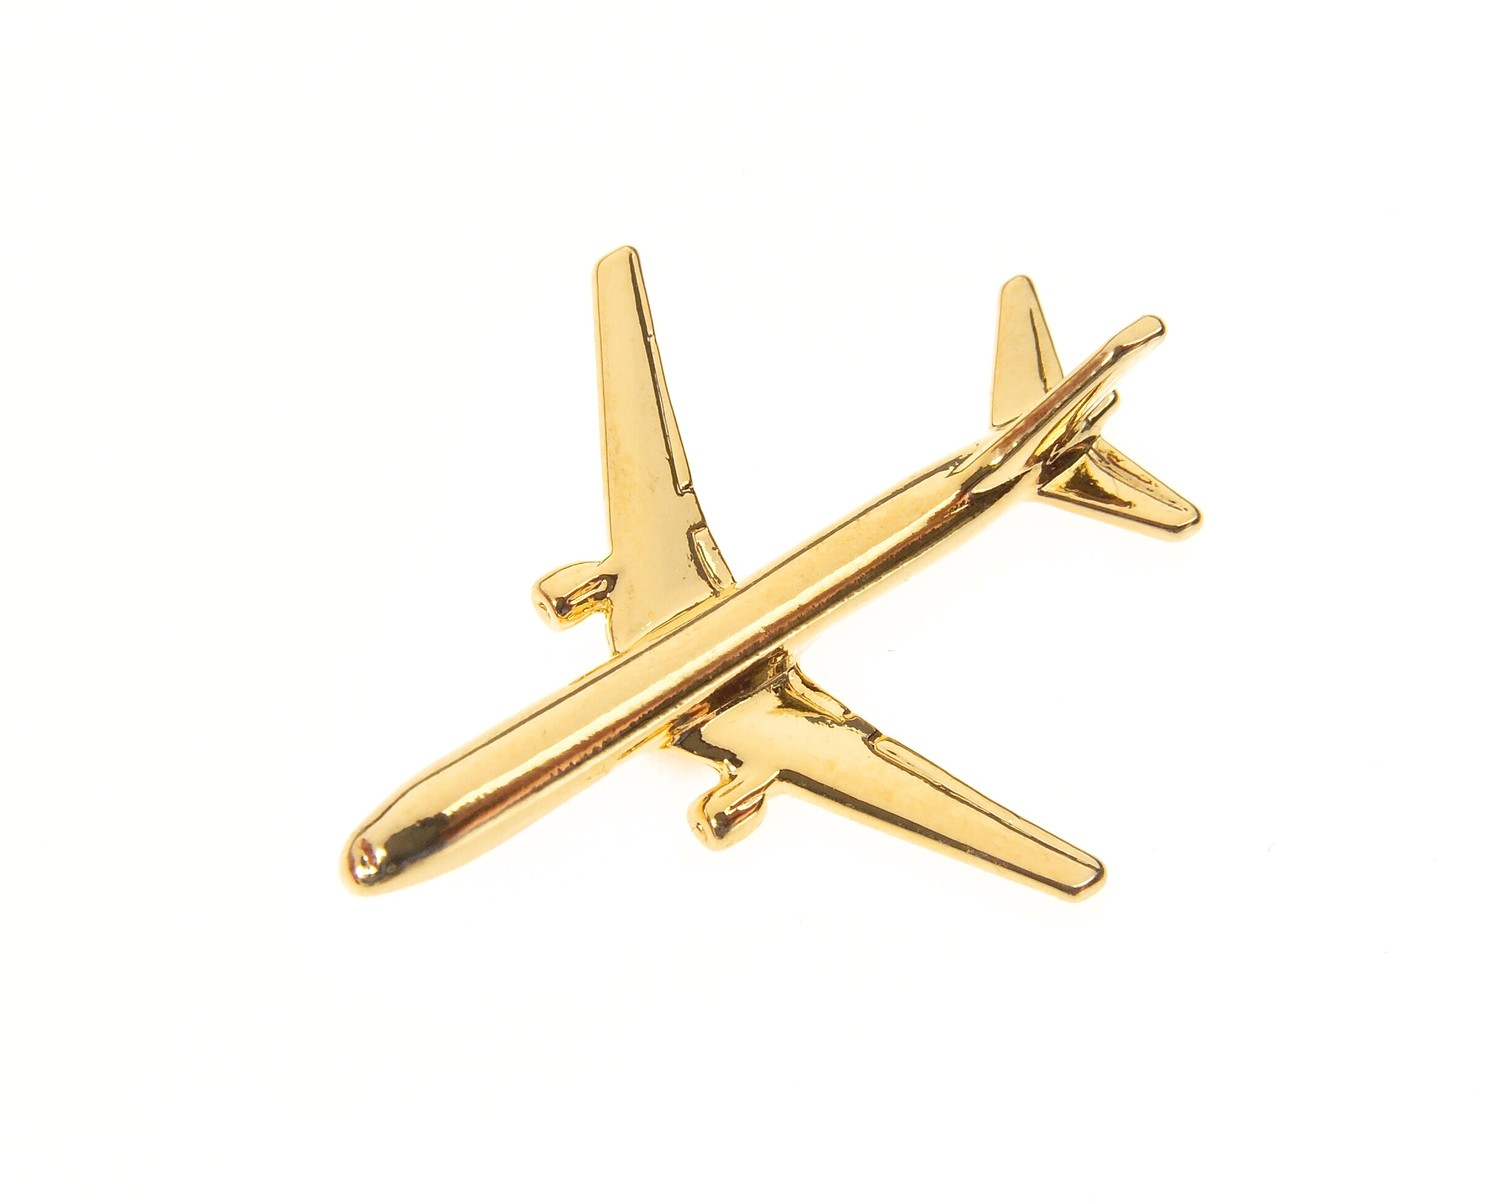 Boeing 767-300 Gold Plated Tie / Lapel Pin